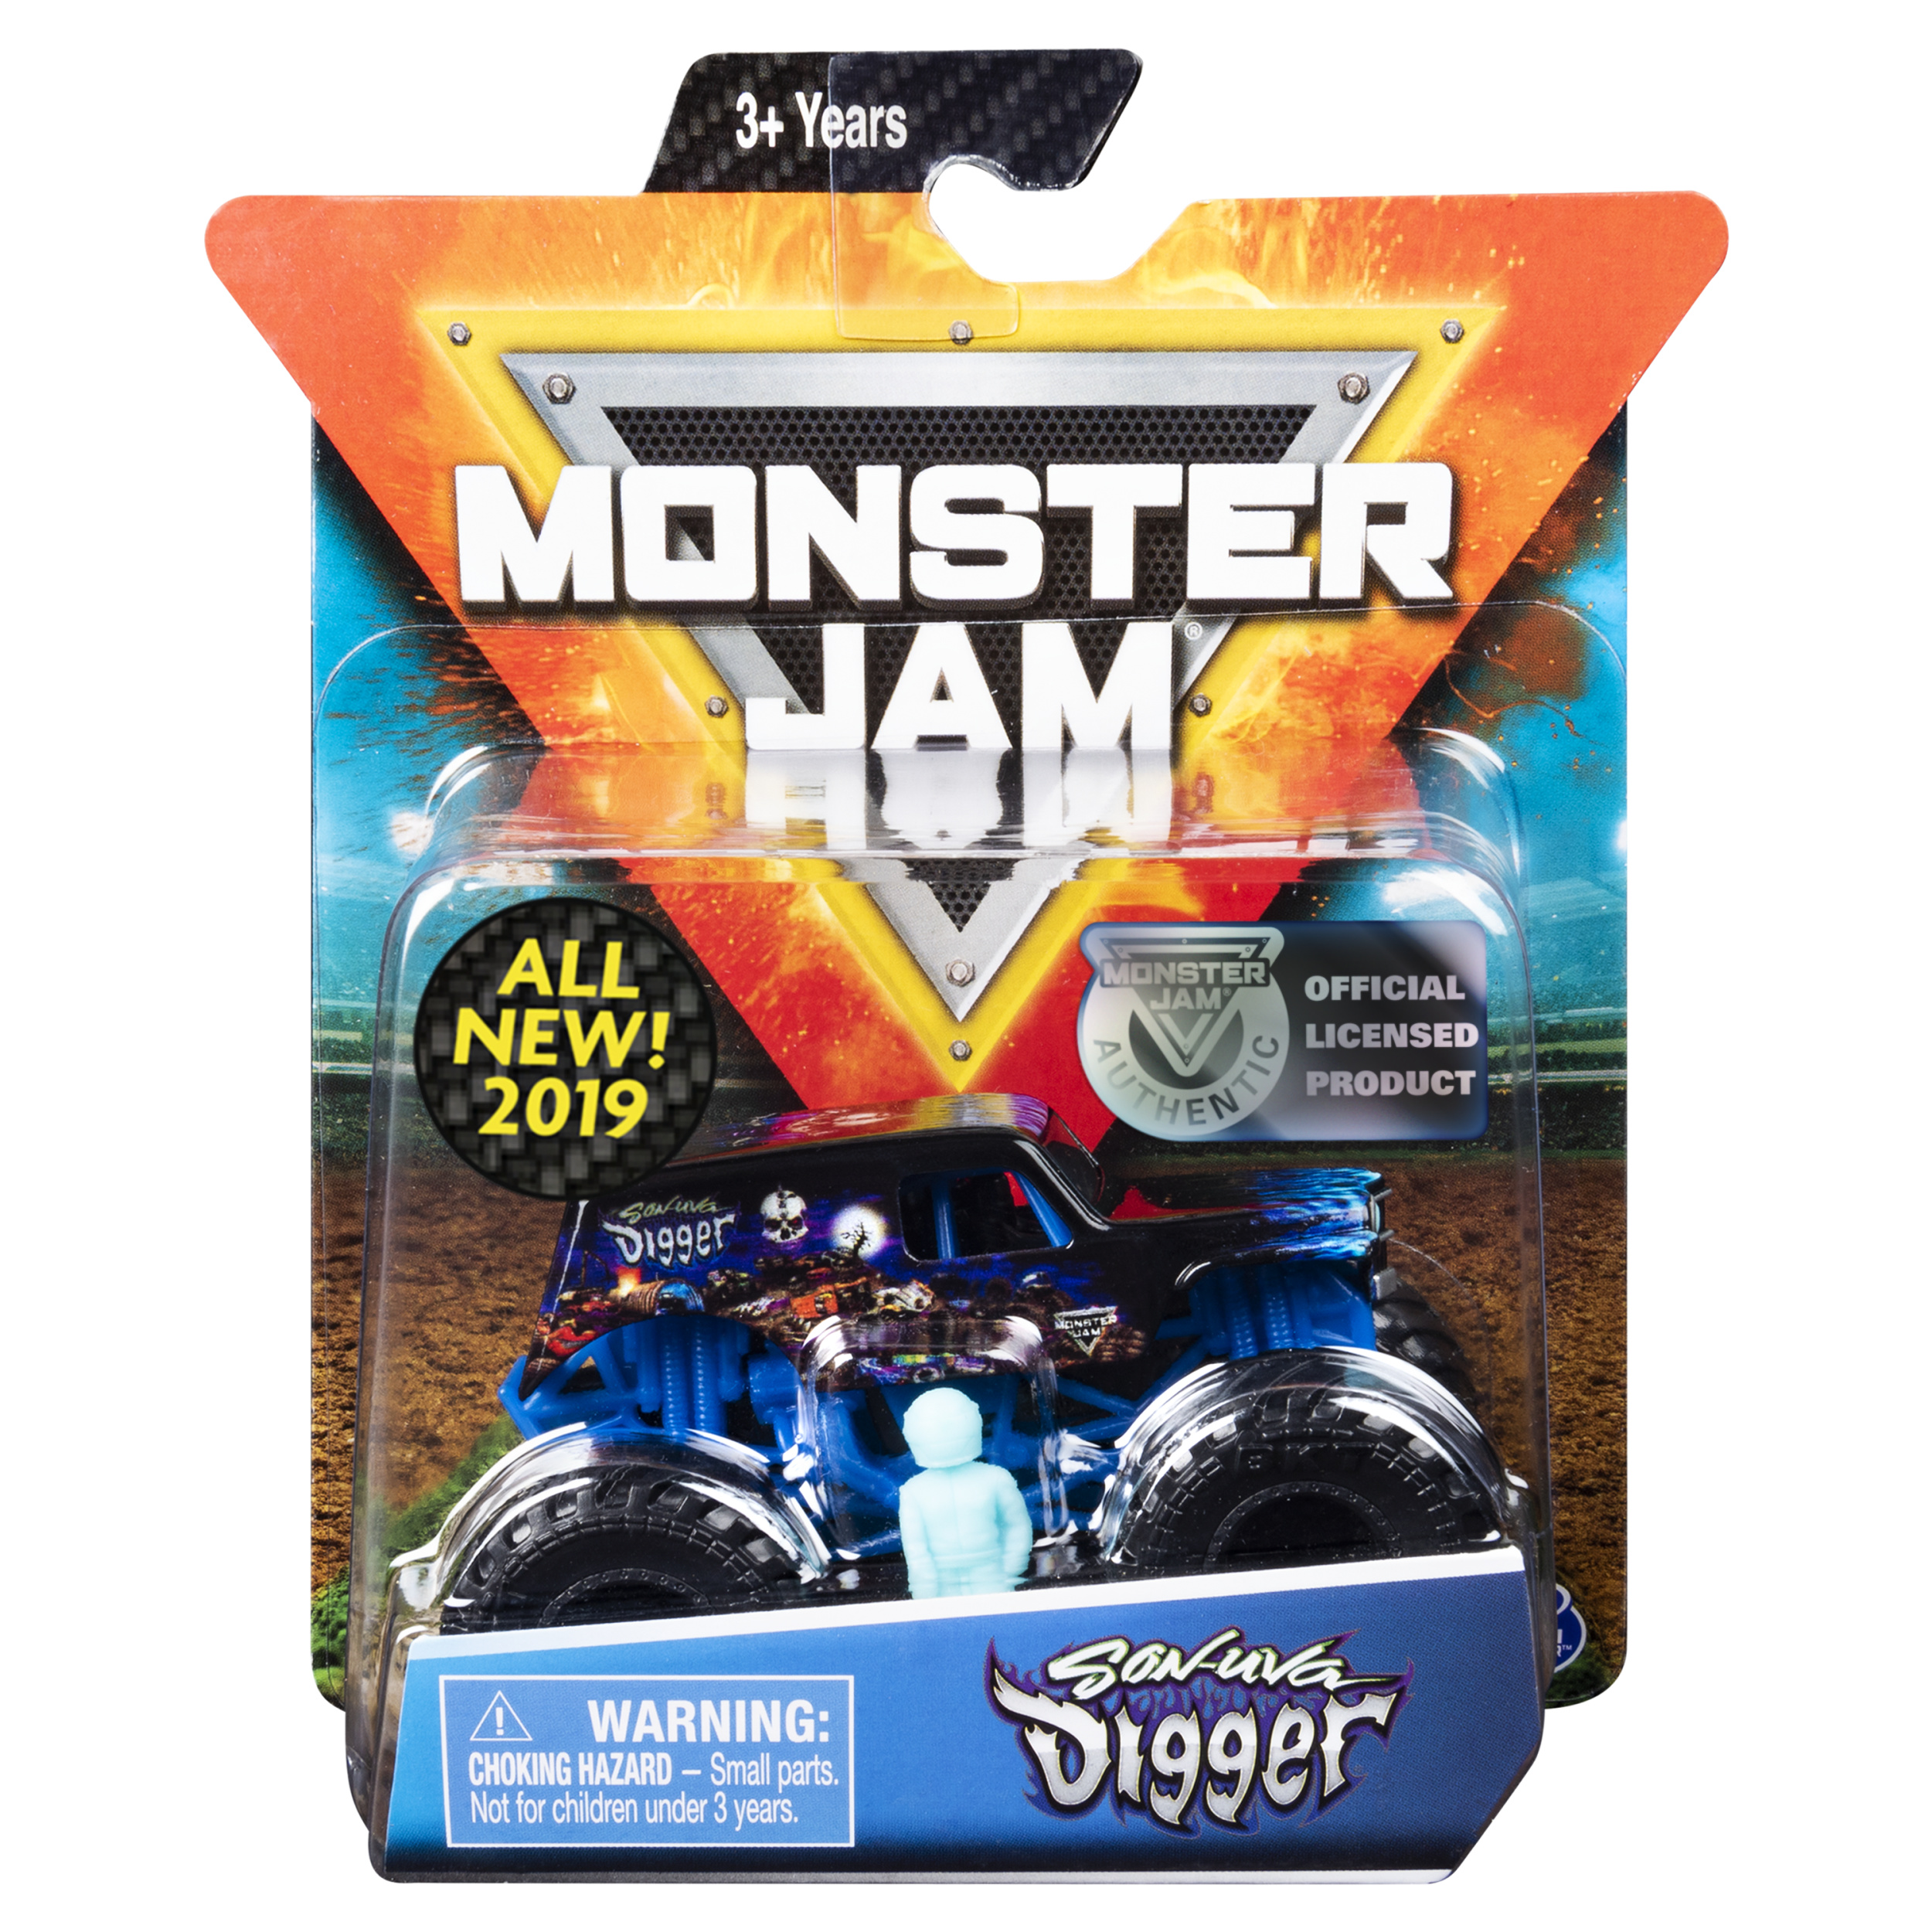 Monster Jam, Official Son-uva Digger Monter Truck, Die-Cast Vehicle, Legacy Trucks Series, 1:64 Scale